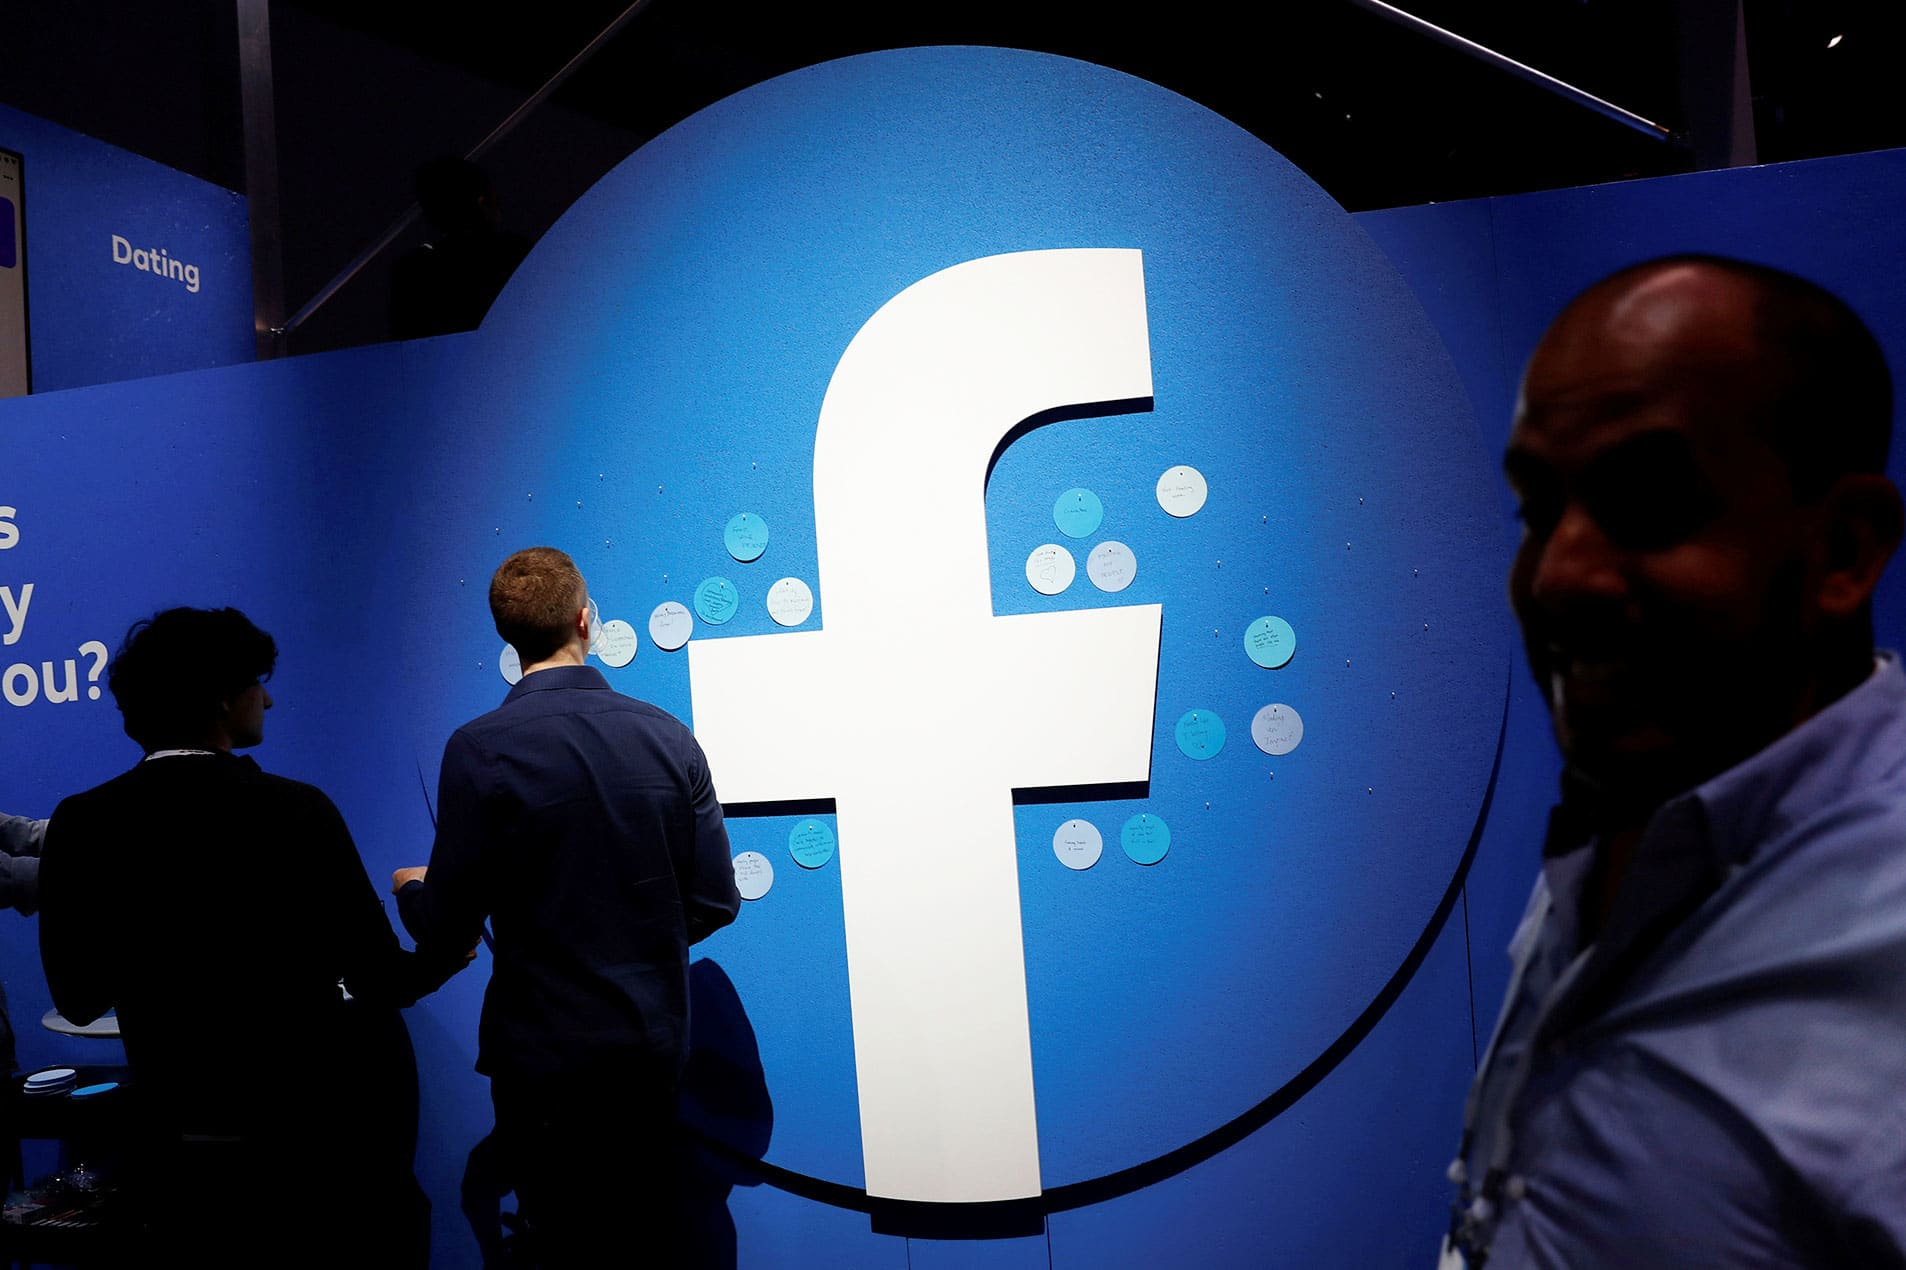 Facebook announces new tools to make it easier for businesses and consumers to communicate